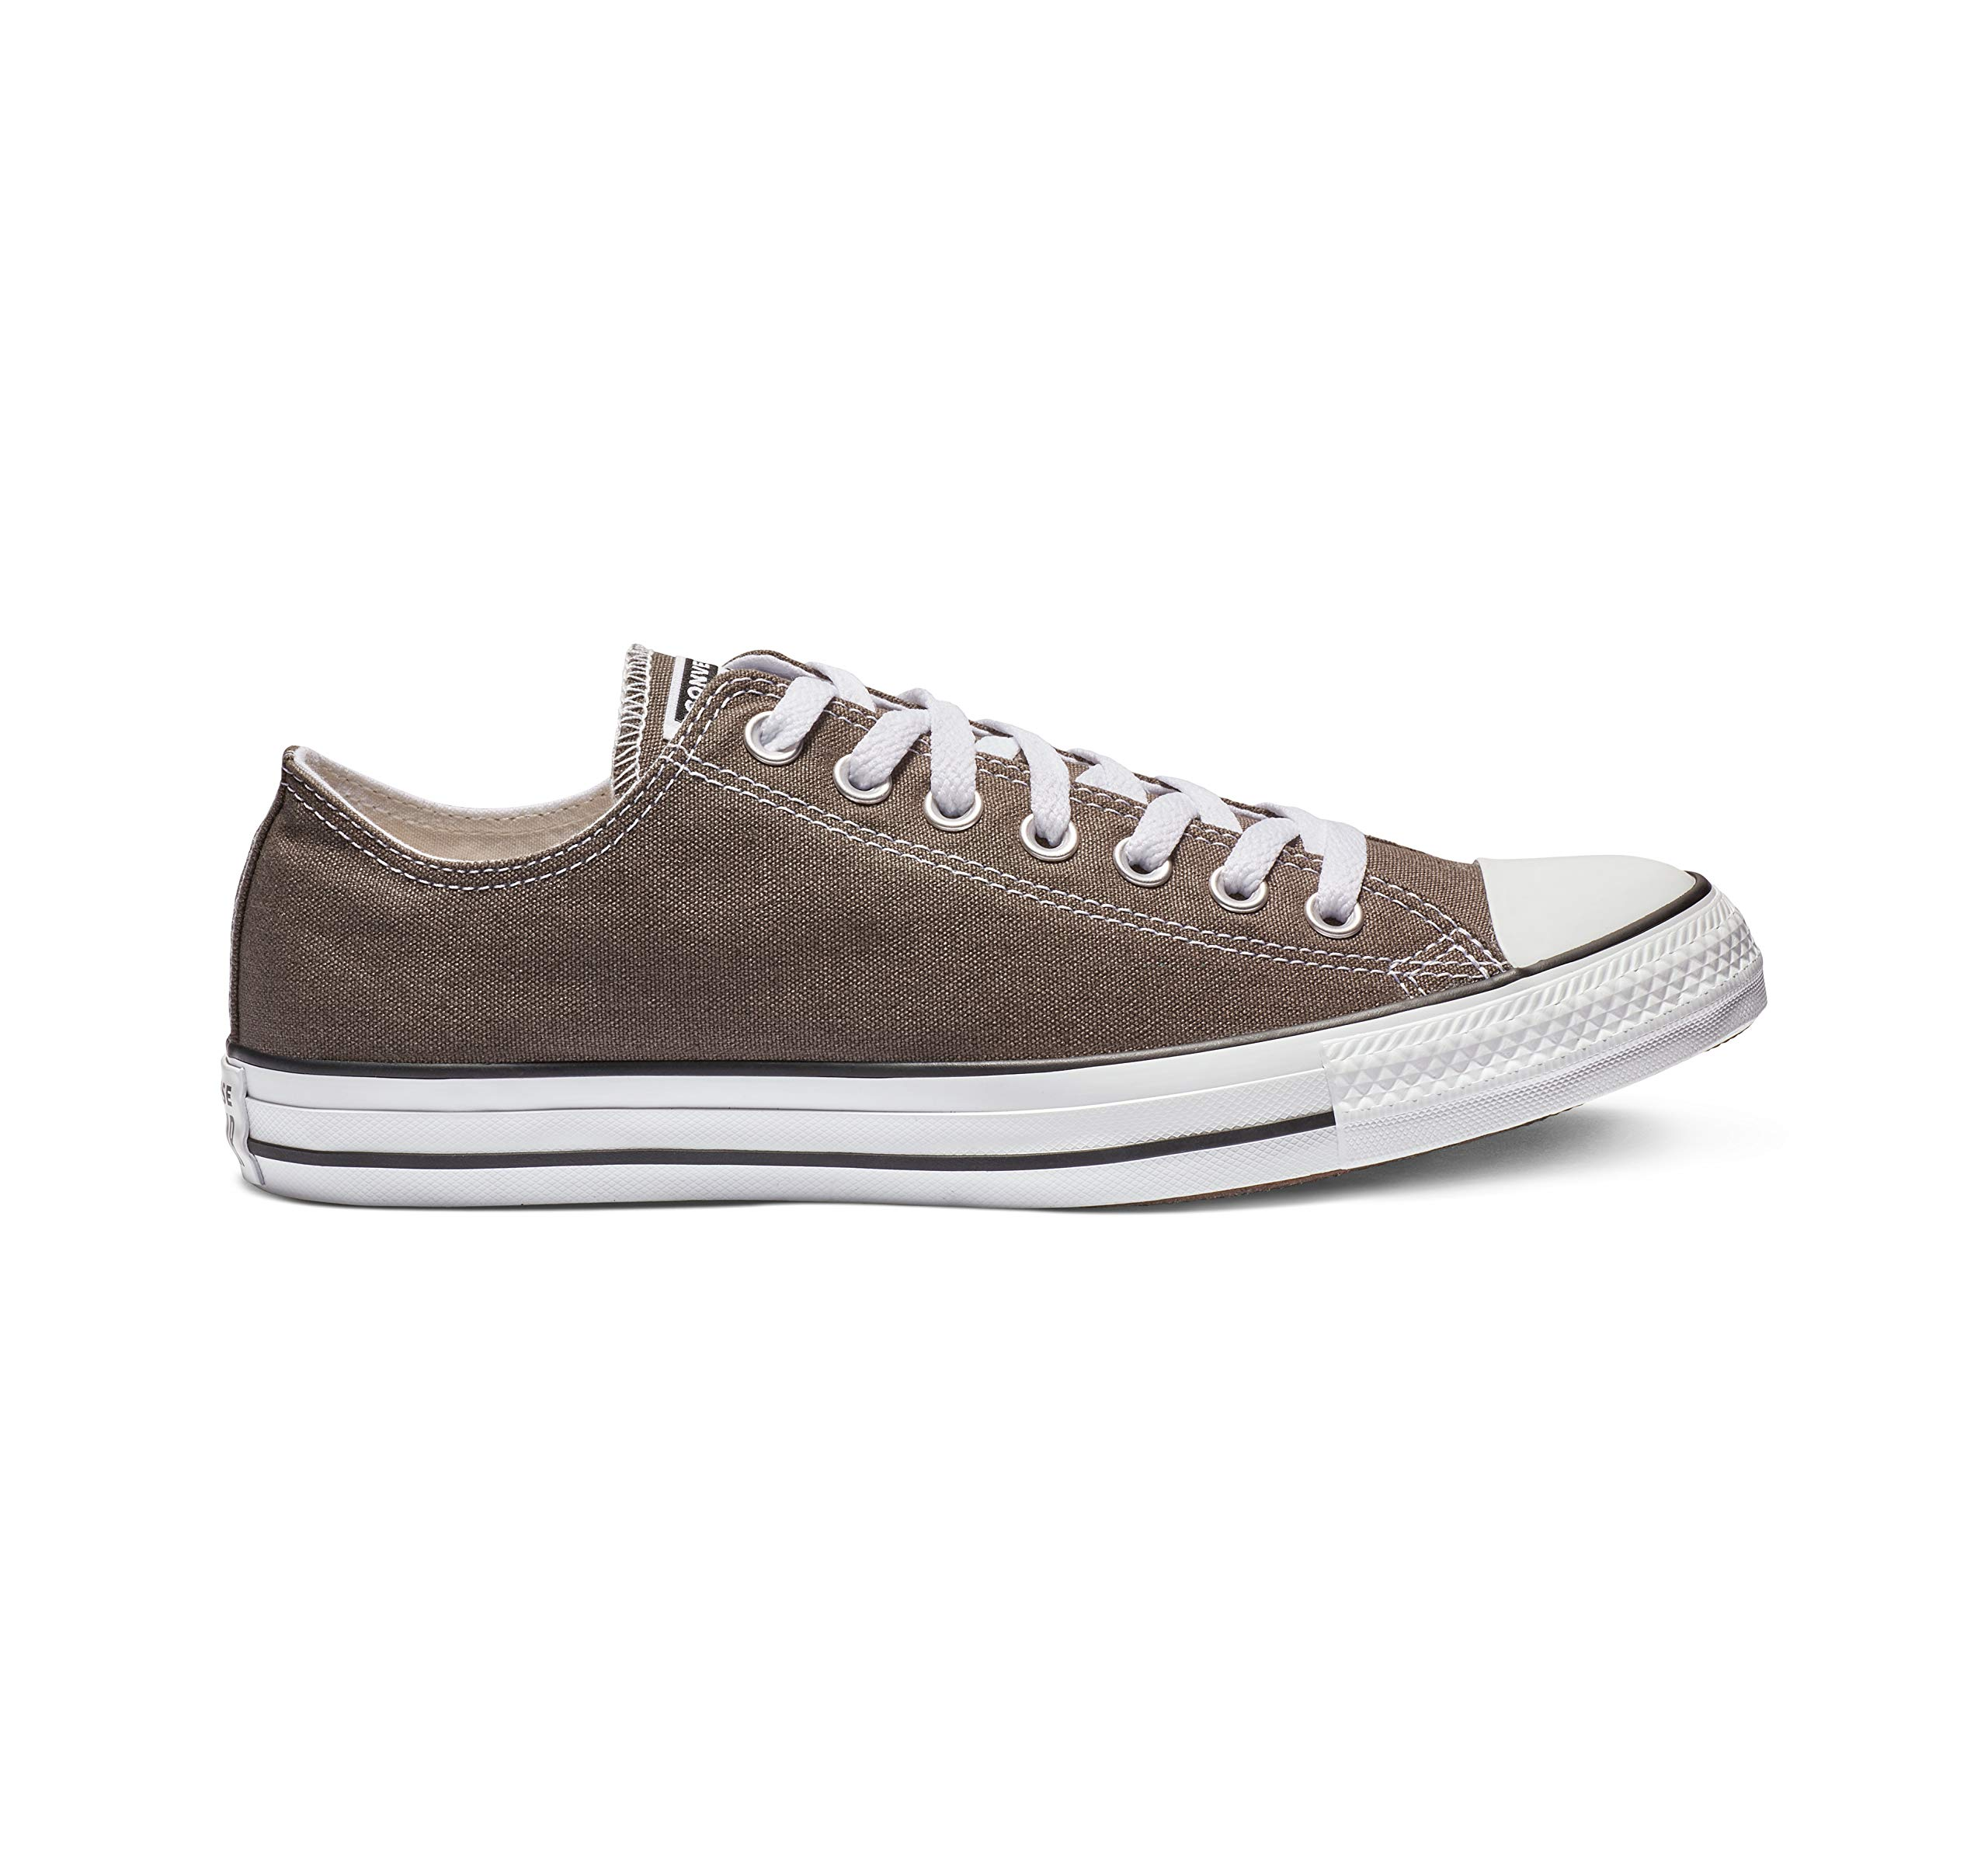 Converse Chuck Taylor All Star Canvas Low Top Sneaker, Charcoal, 2 M US Little Kid by Converse